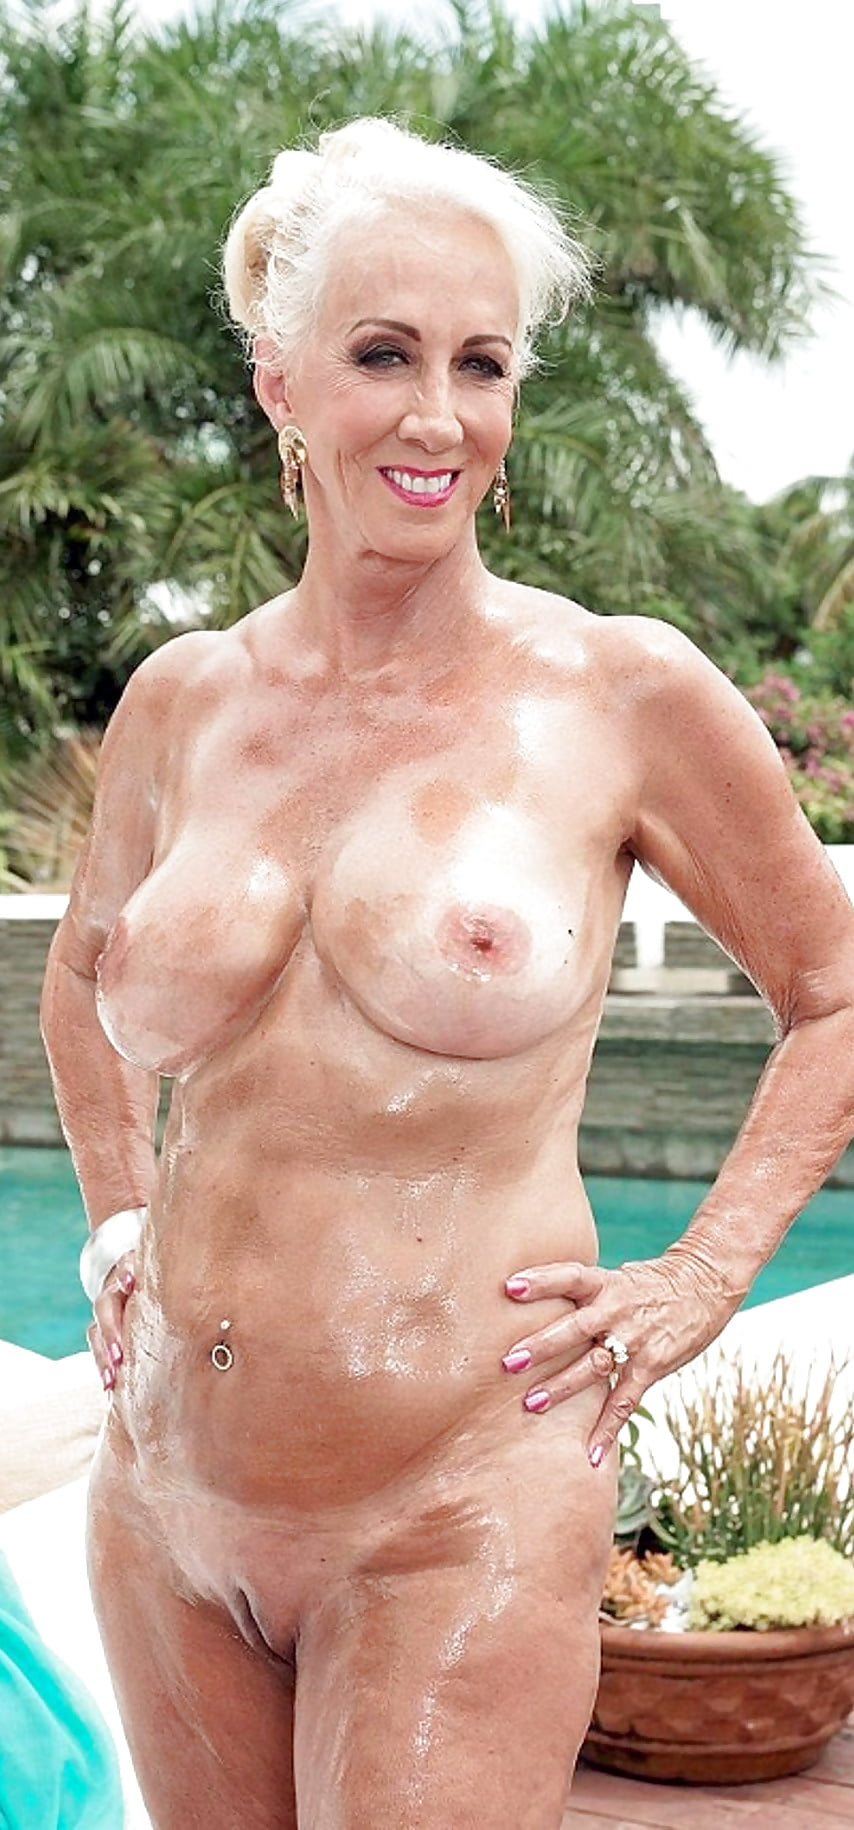 Topless Old Senior Naked Lady Pictures Pic